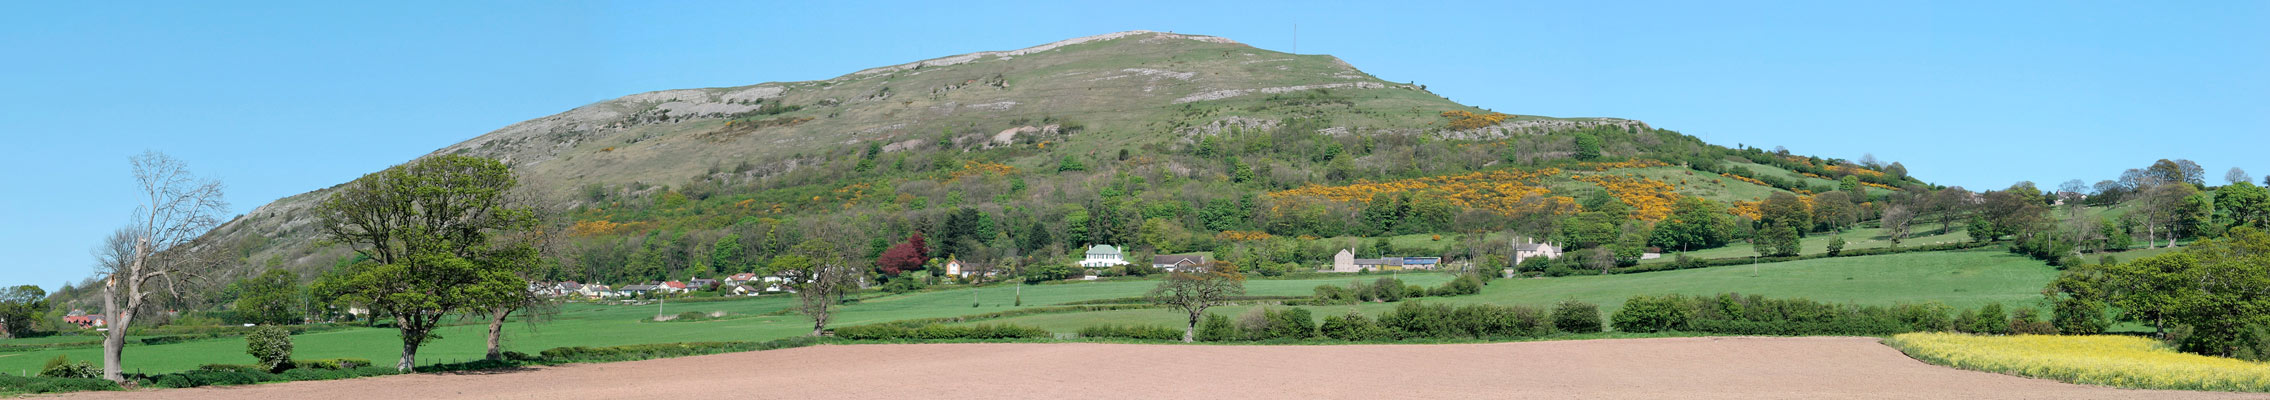 Panorama from Waen Road, near Hottia Farm, across Moel Hiraddug, Dyserth